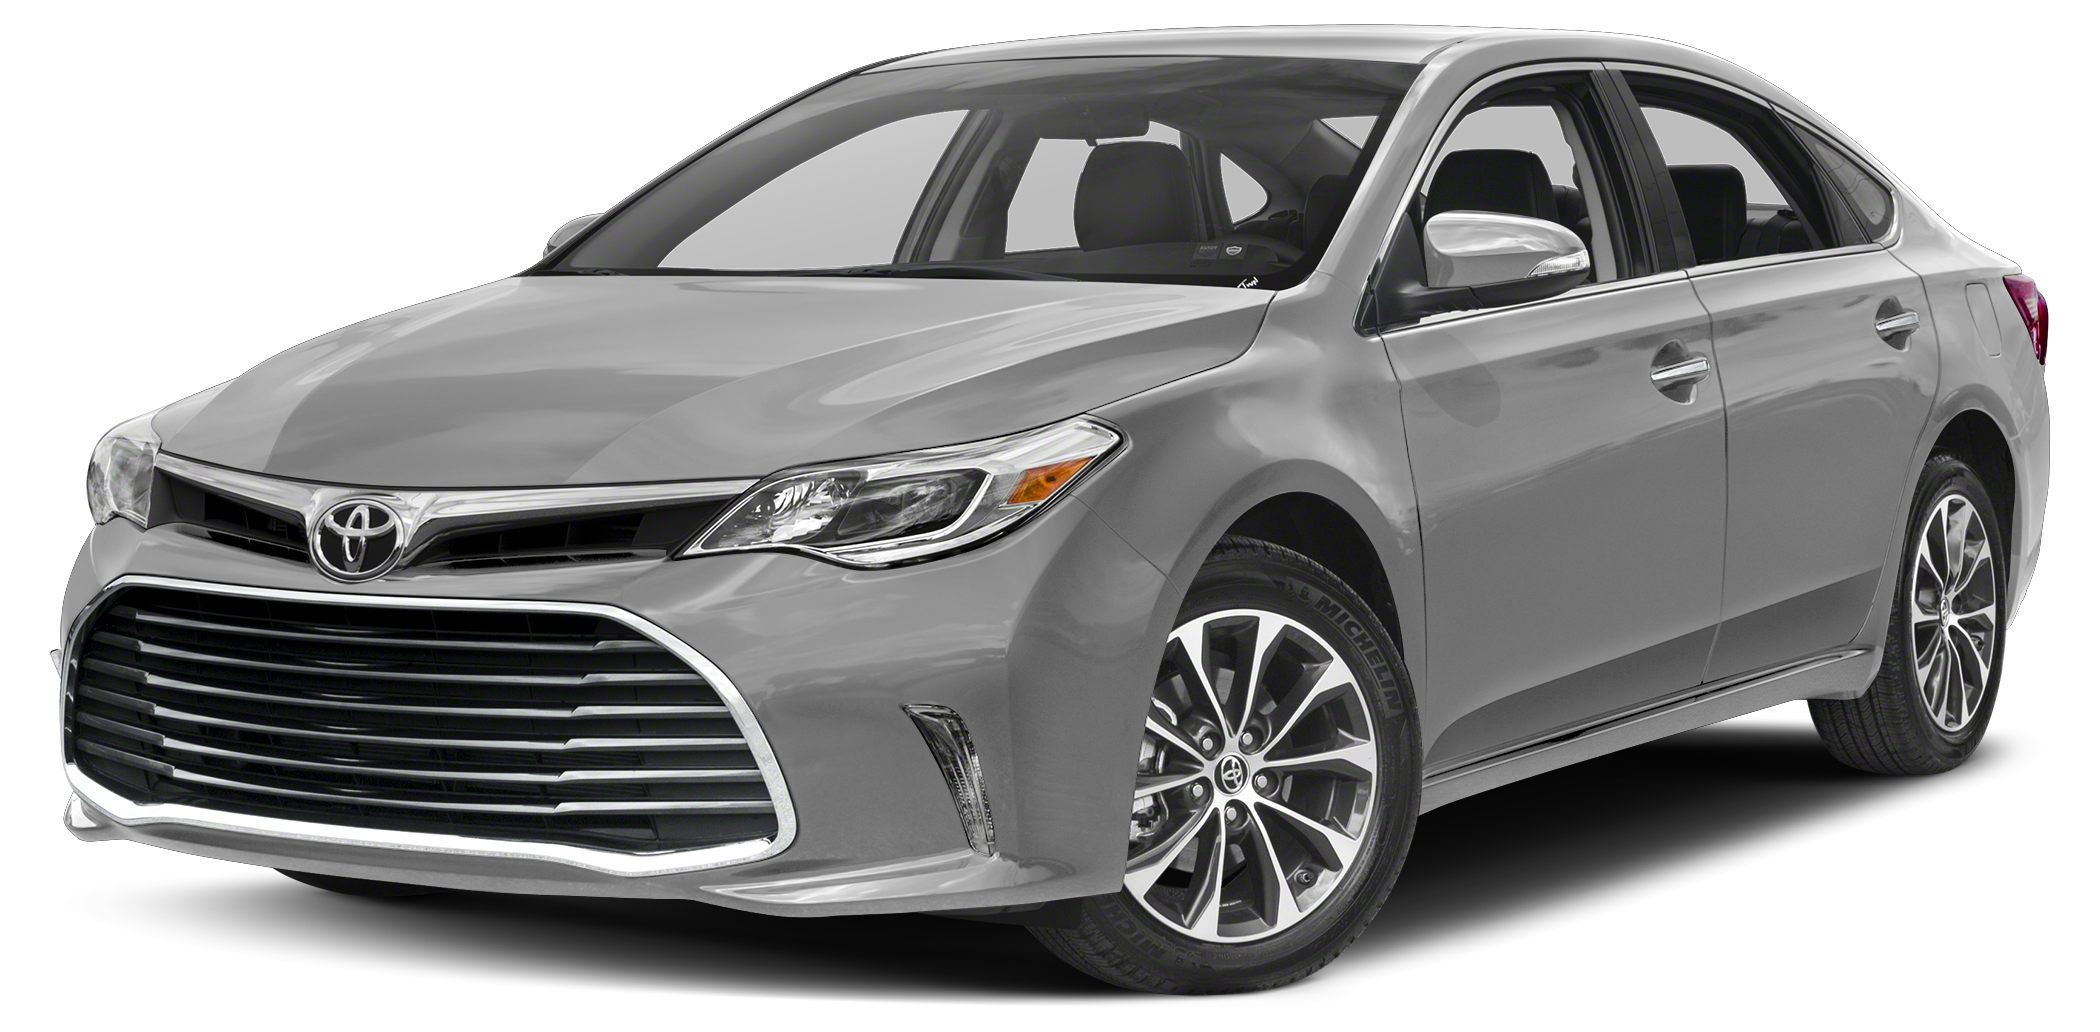 2018 Toyota Avalon Touring New Arrival Priced to sell 4847 below MSRP -Great Gas Mileage- Ba